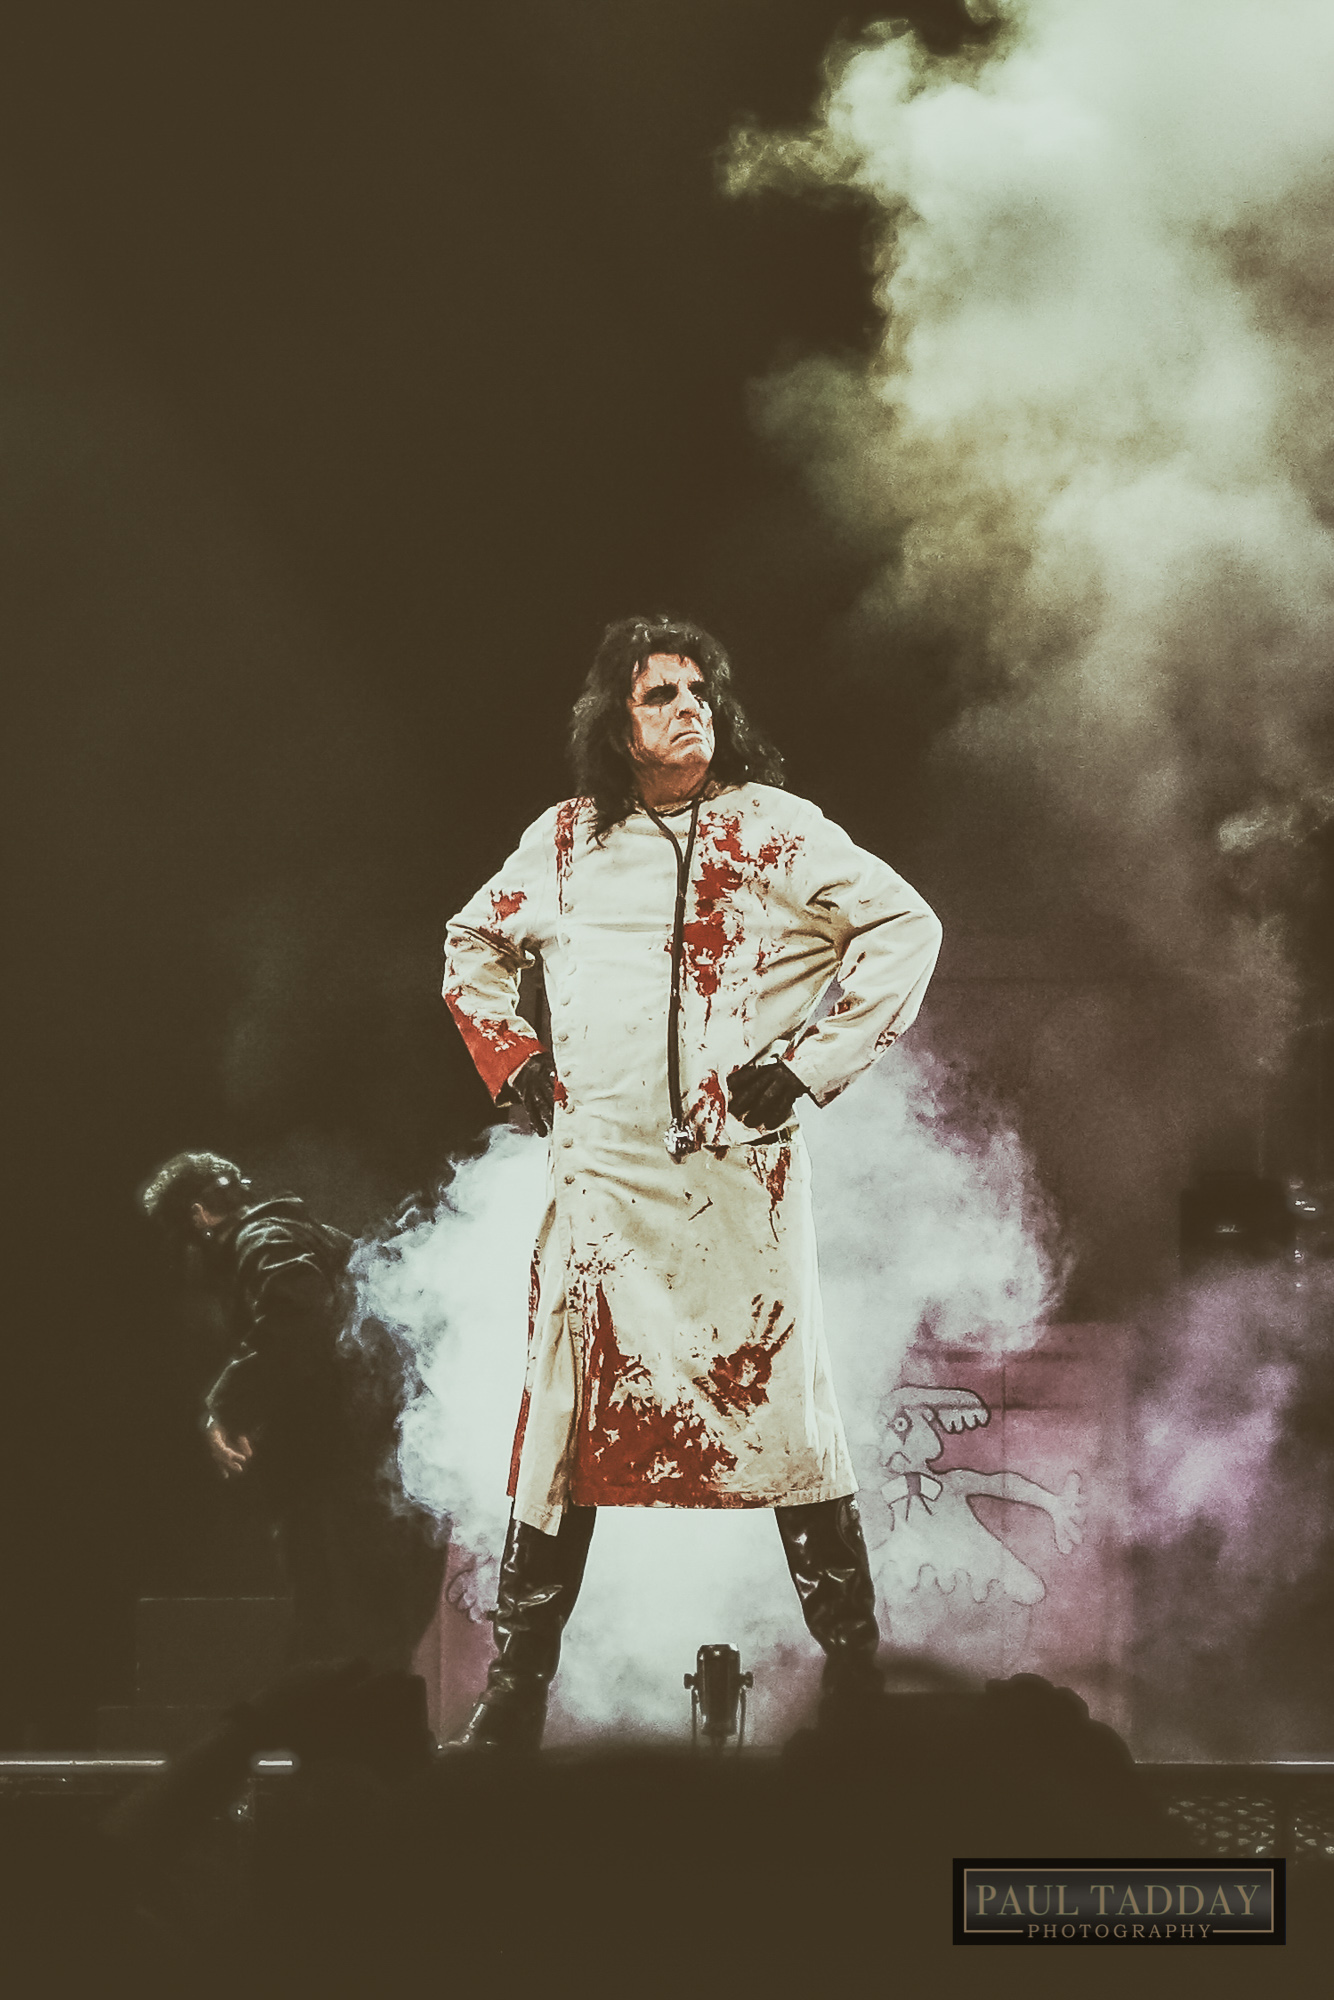 alice cooper - melbourne - paul tadday photography - 201017 - 35.jpg